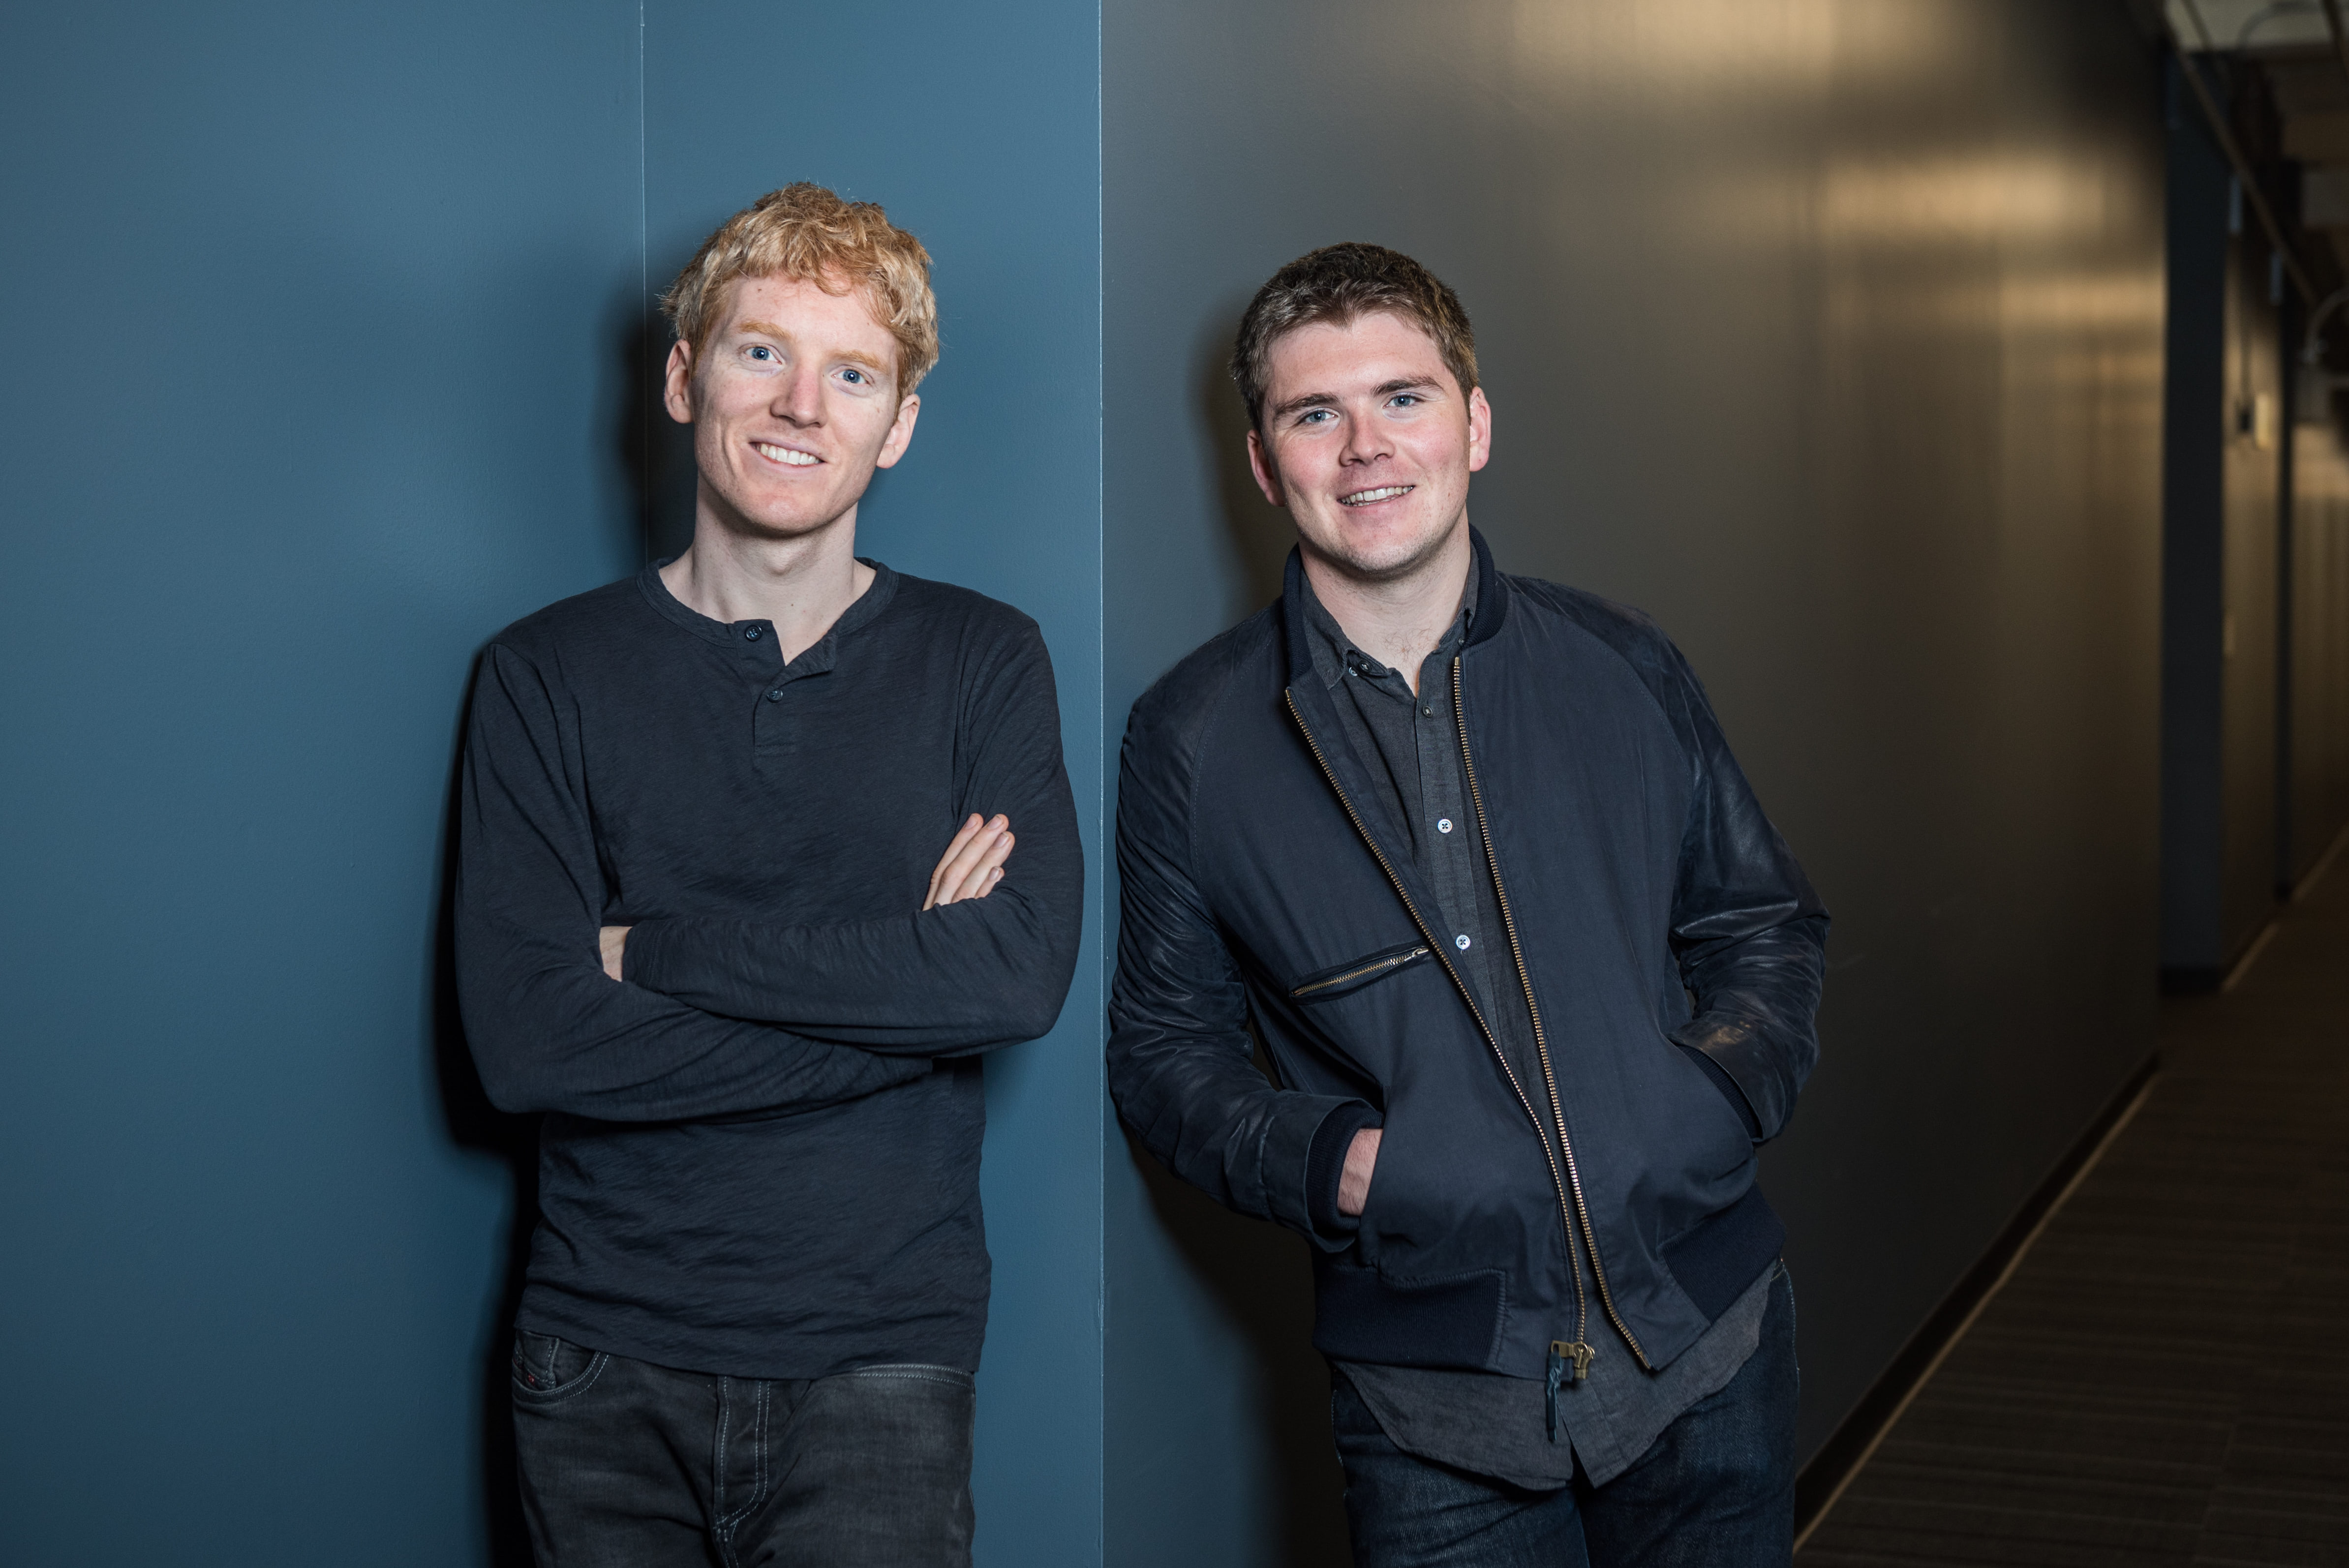 Patrick and John Collison 1